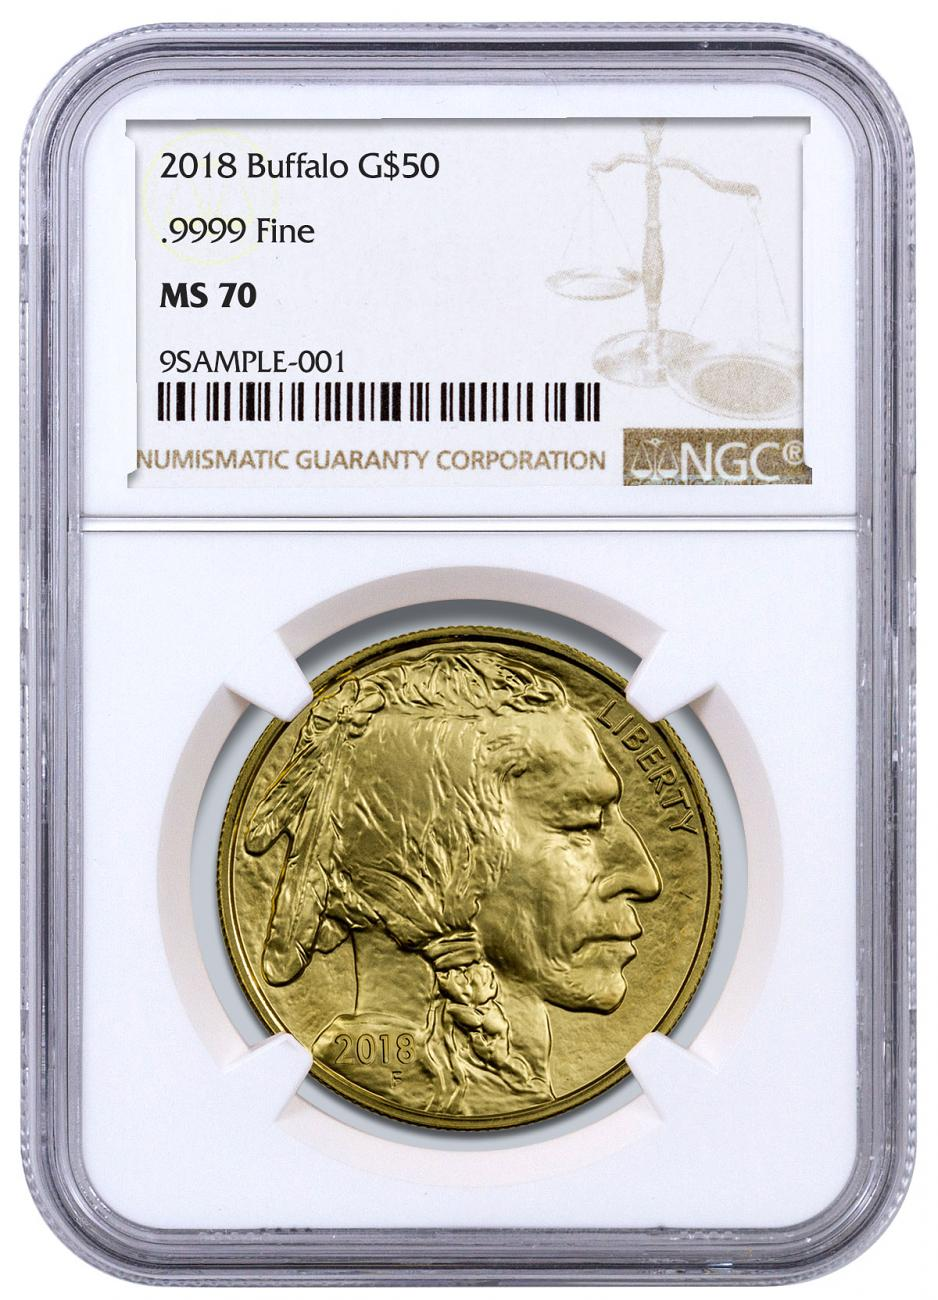 2018 1 oz Gold Buffalo $50 Coin NGC MS70